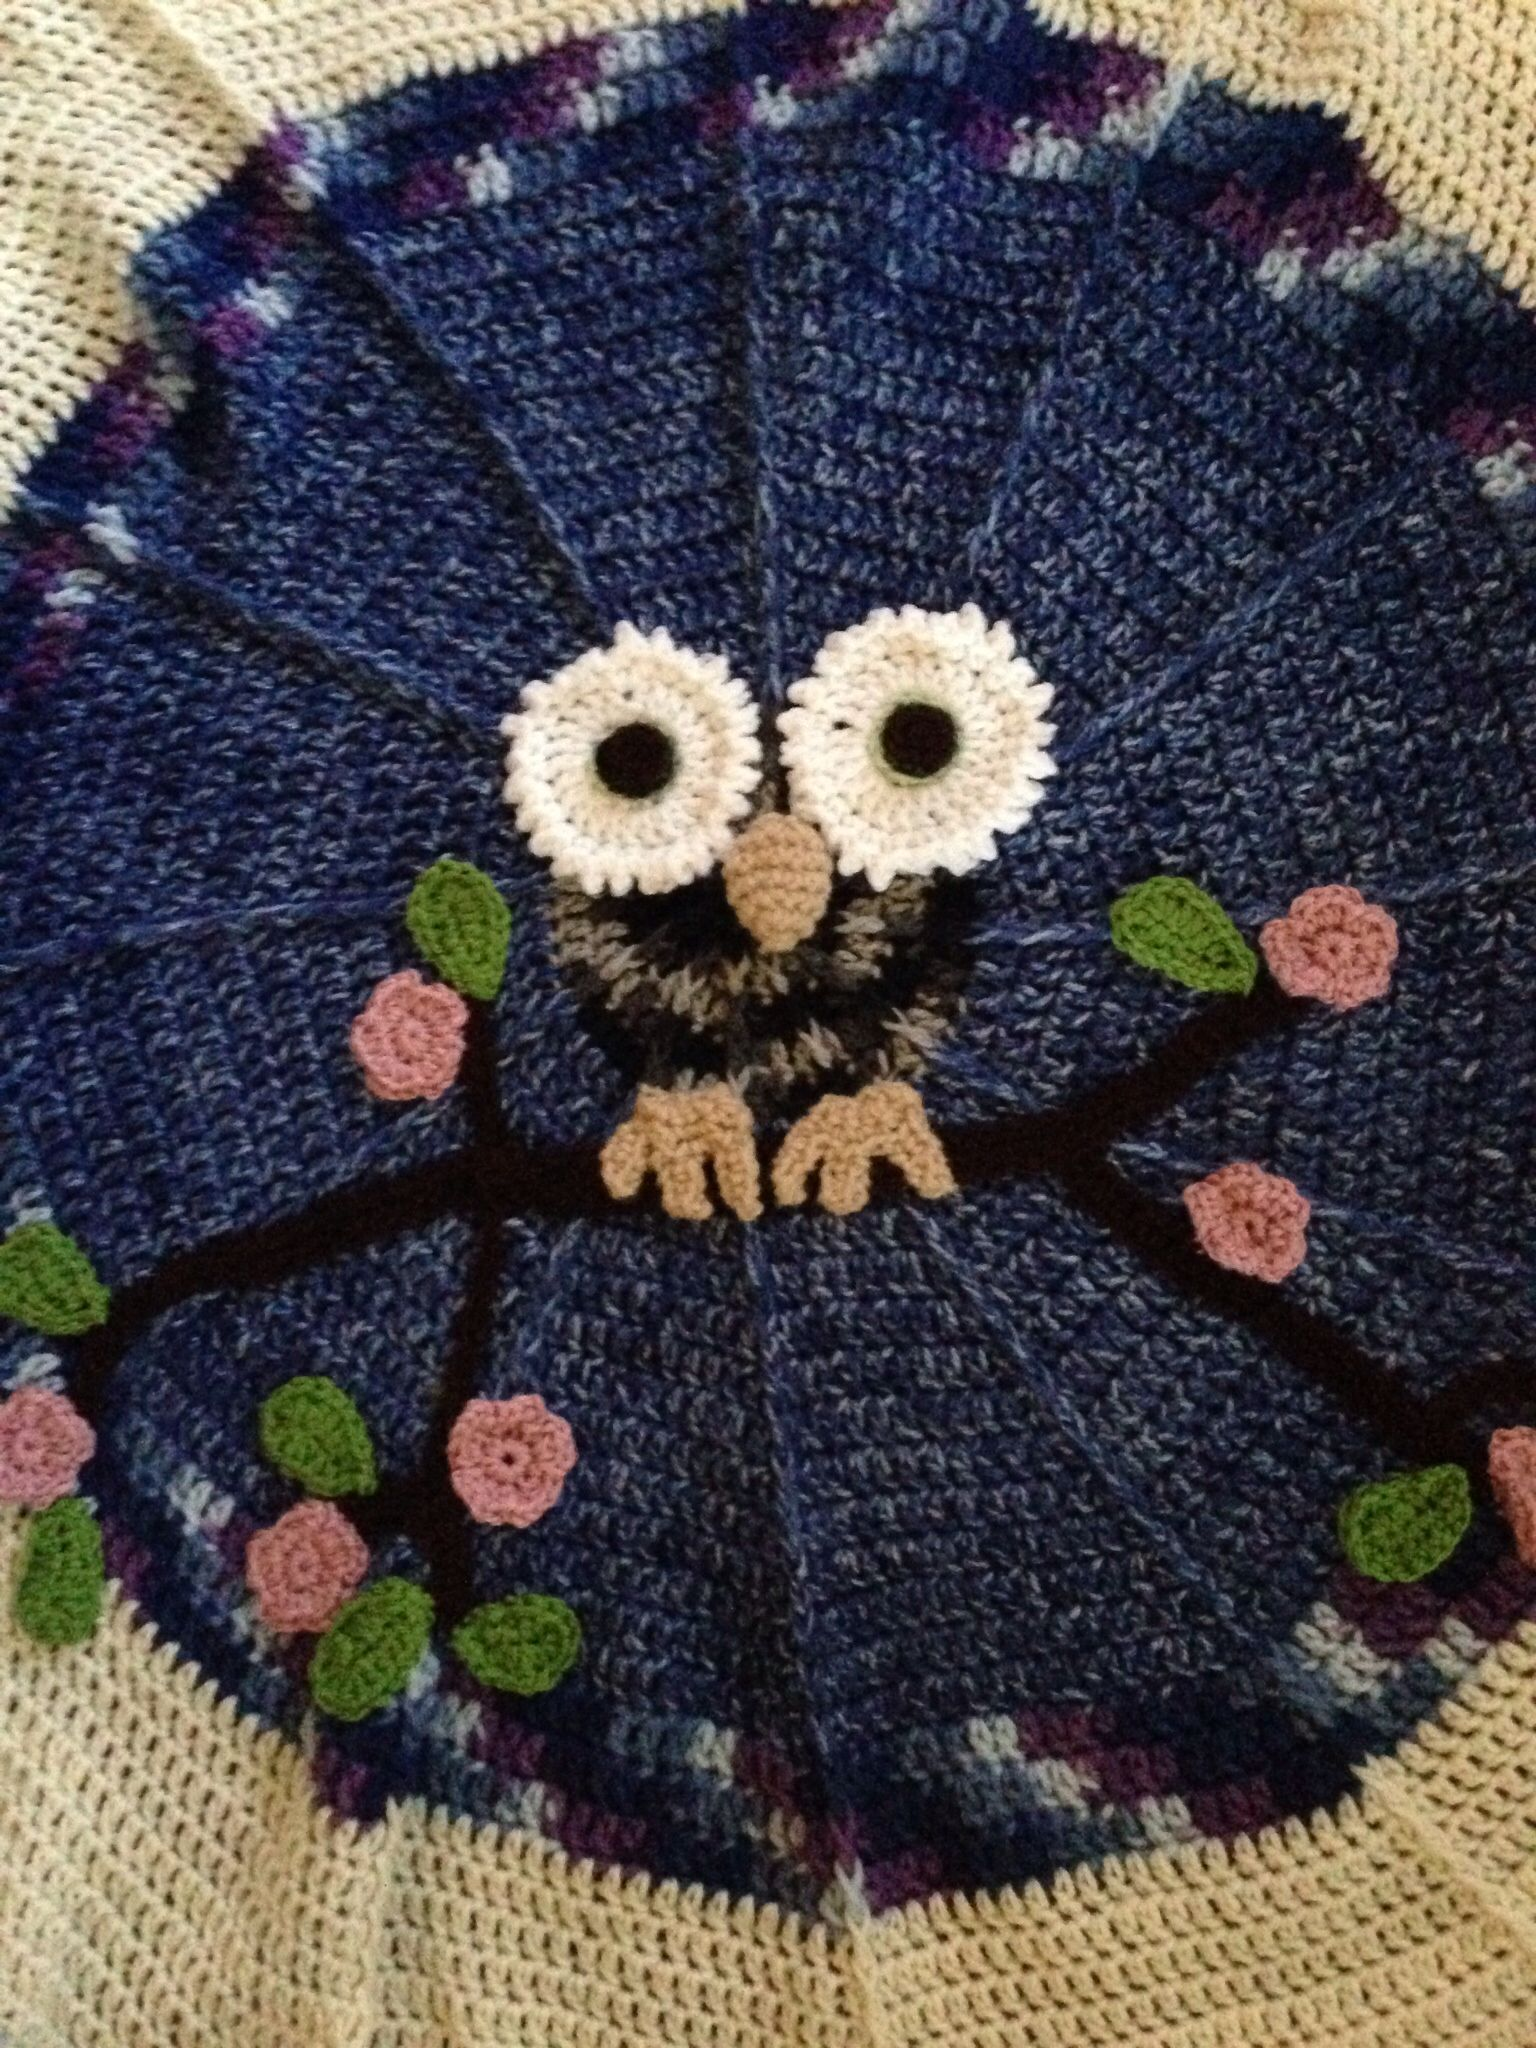 Crochet owl blanket pattern from redheart my crochet knit crochet owl blanket pattern from redheart bankloansurffo Image collections